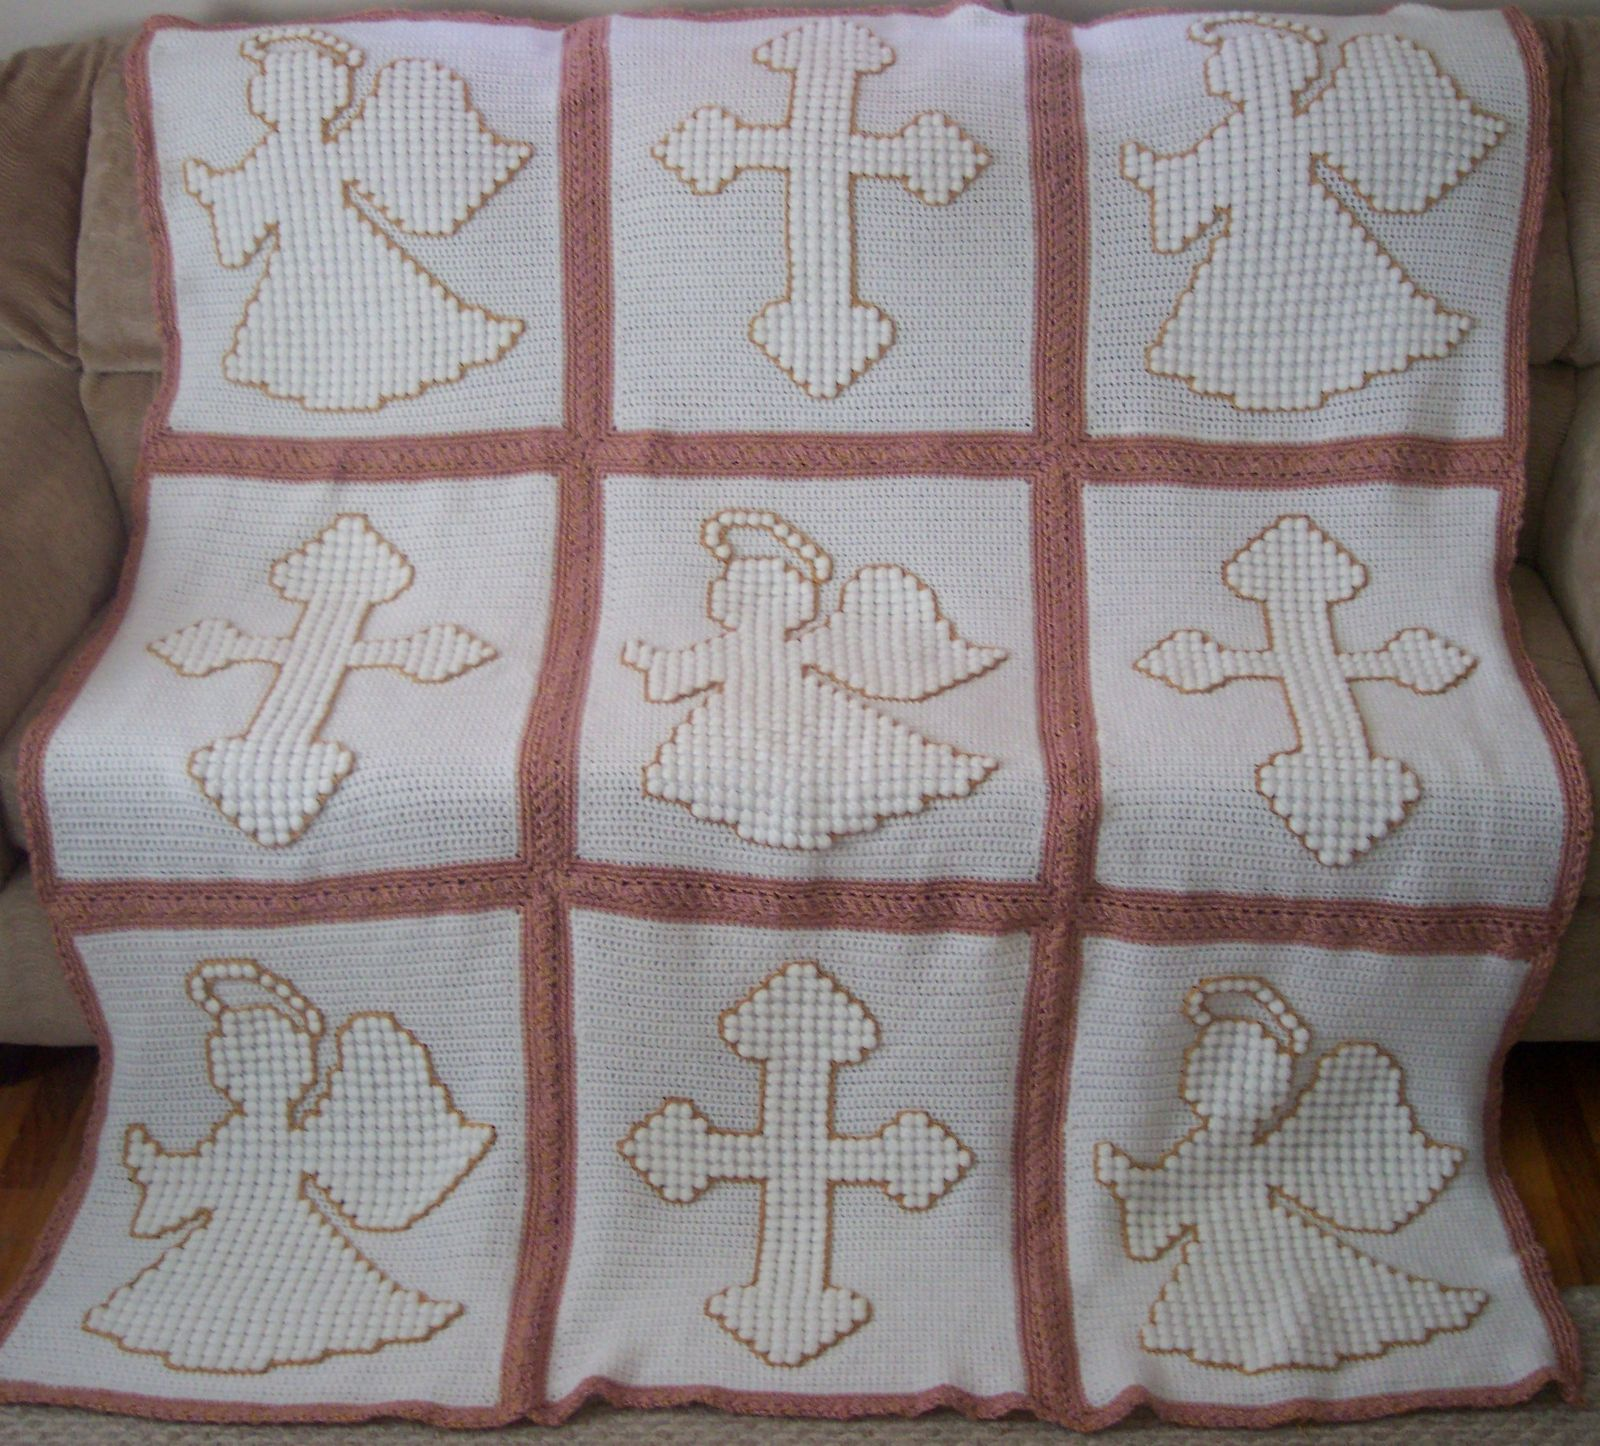 Crochet Cross Afghan Pattern Free : Yarn - Caron Simply Soft